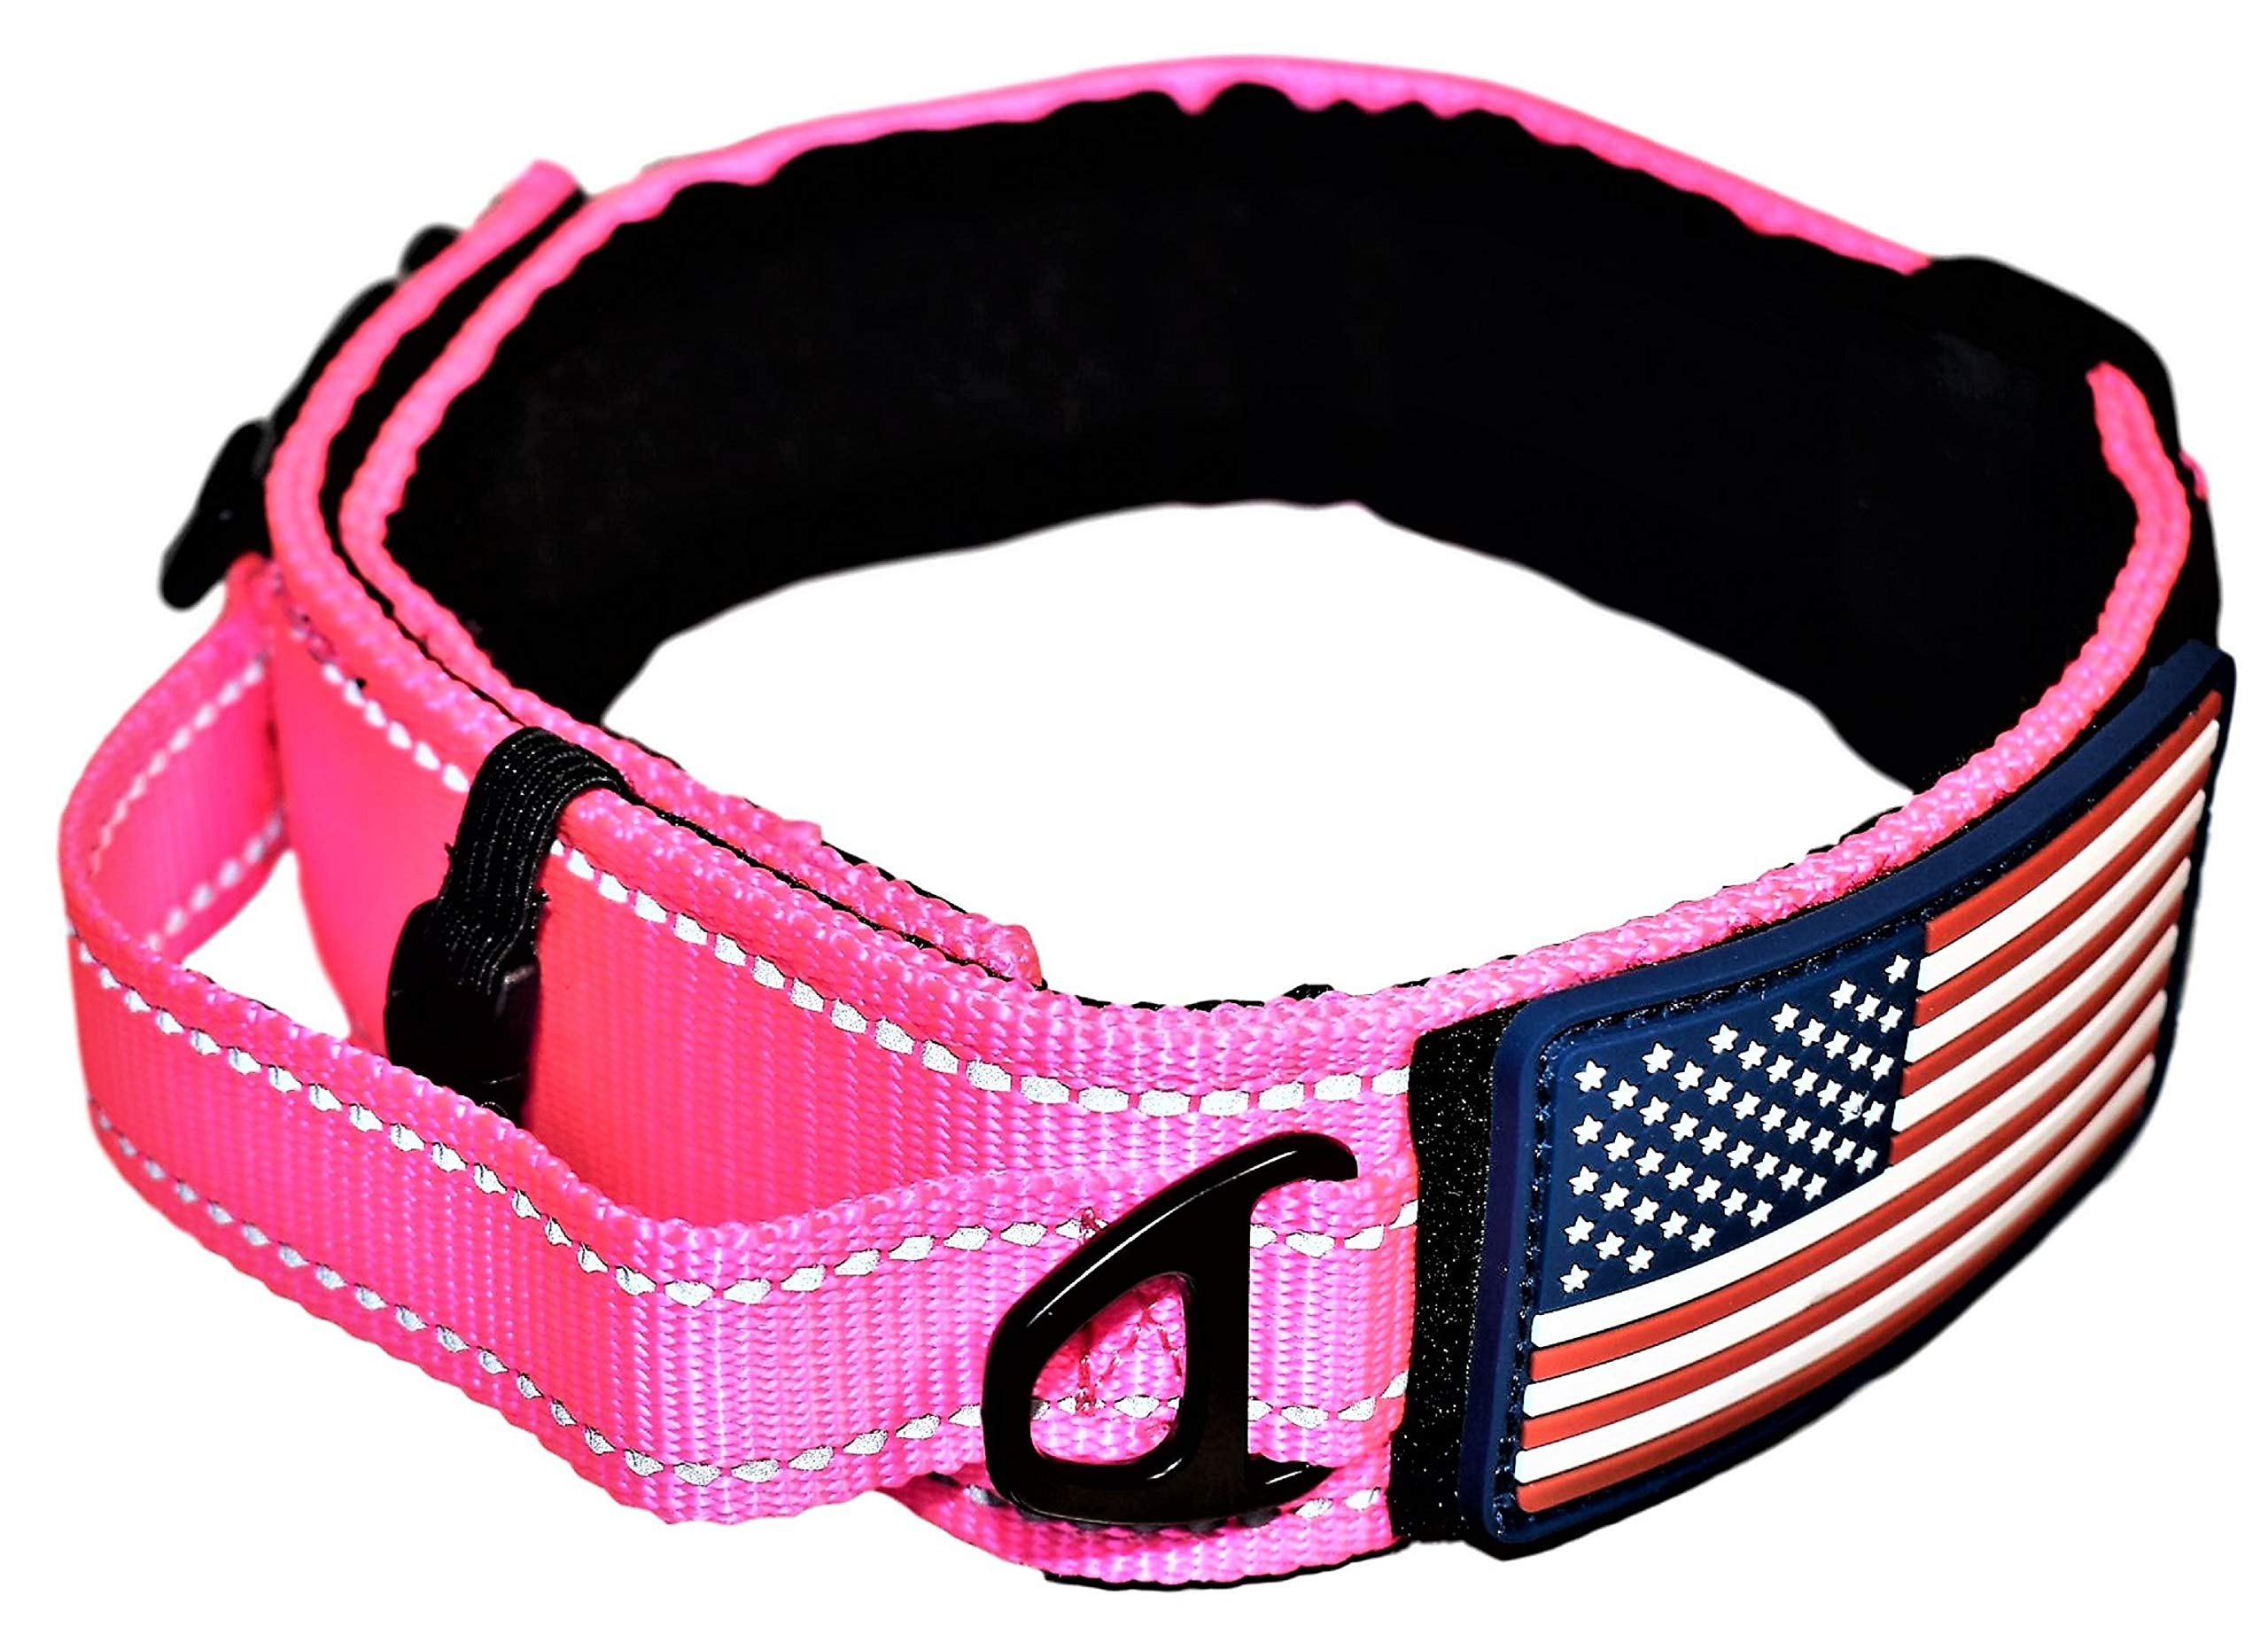 DOG COLLAR WITH CONTROL HANDLE QUICK RELEASE METAL BUCKLE HEAVY DUTY MILITARY STYLE 2'' WIDTH NYLON WITH USA FLAG GREAT FOR HANDLING AND TRAINING LARGE CANINE MALE OR FEMALE K9 (PINK NEW BUCKLE)